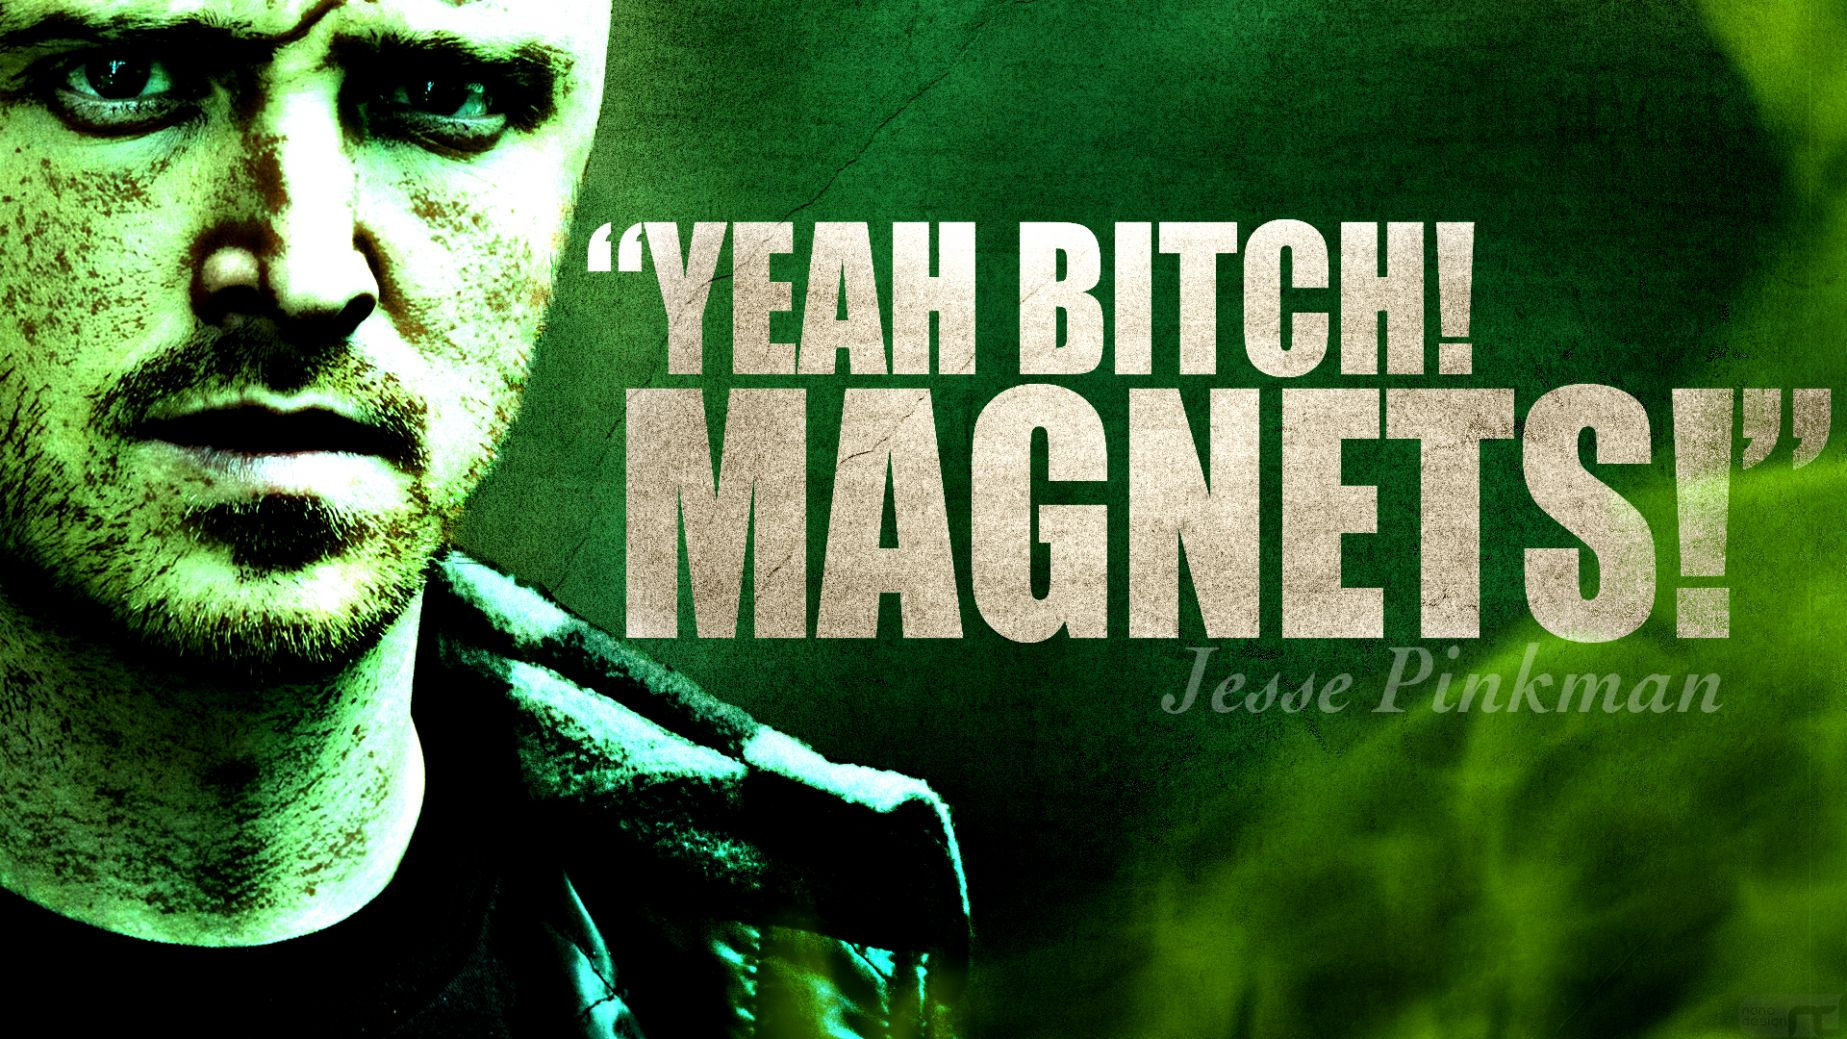 Mejores citas de Breaking Bad en Wallpapers[Propias][Part1]